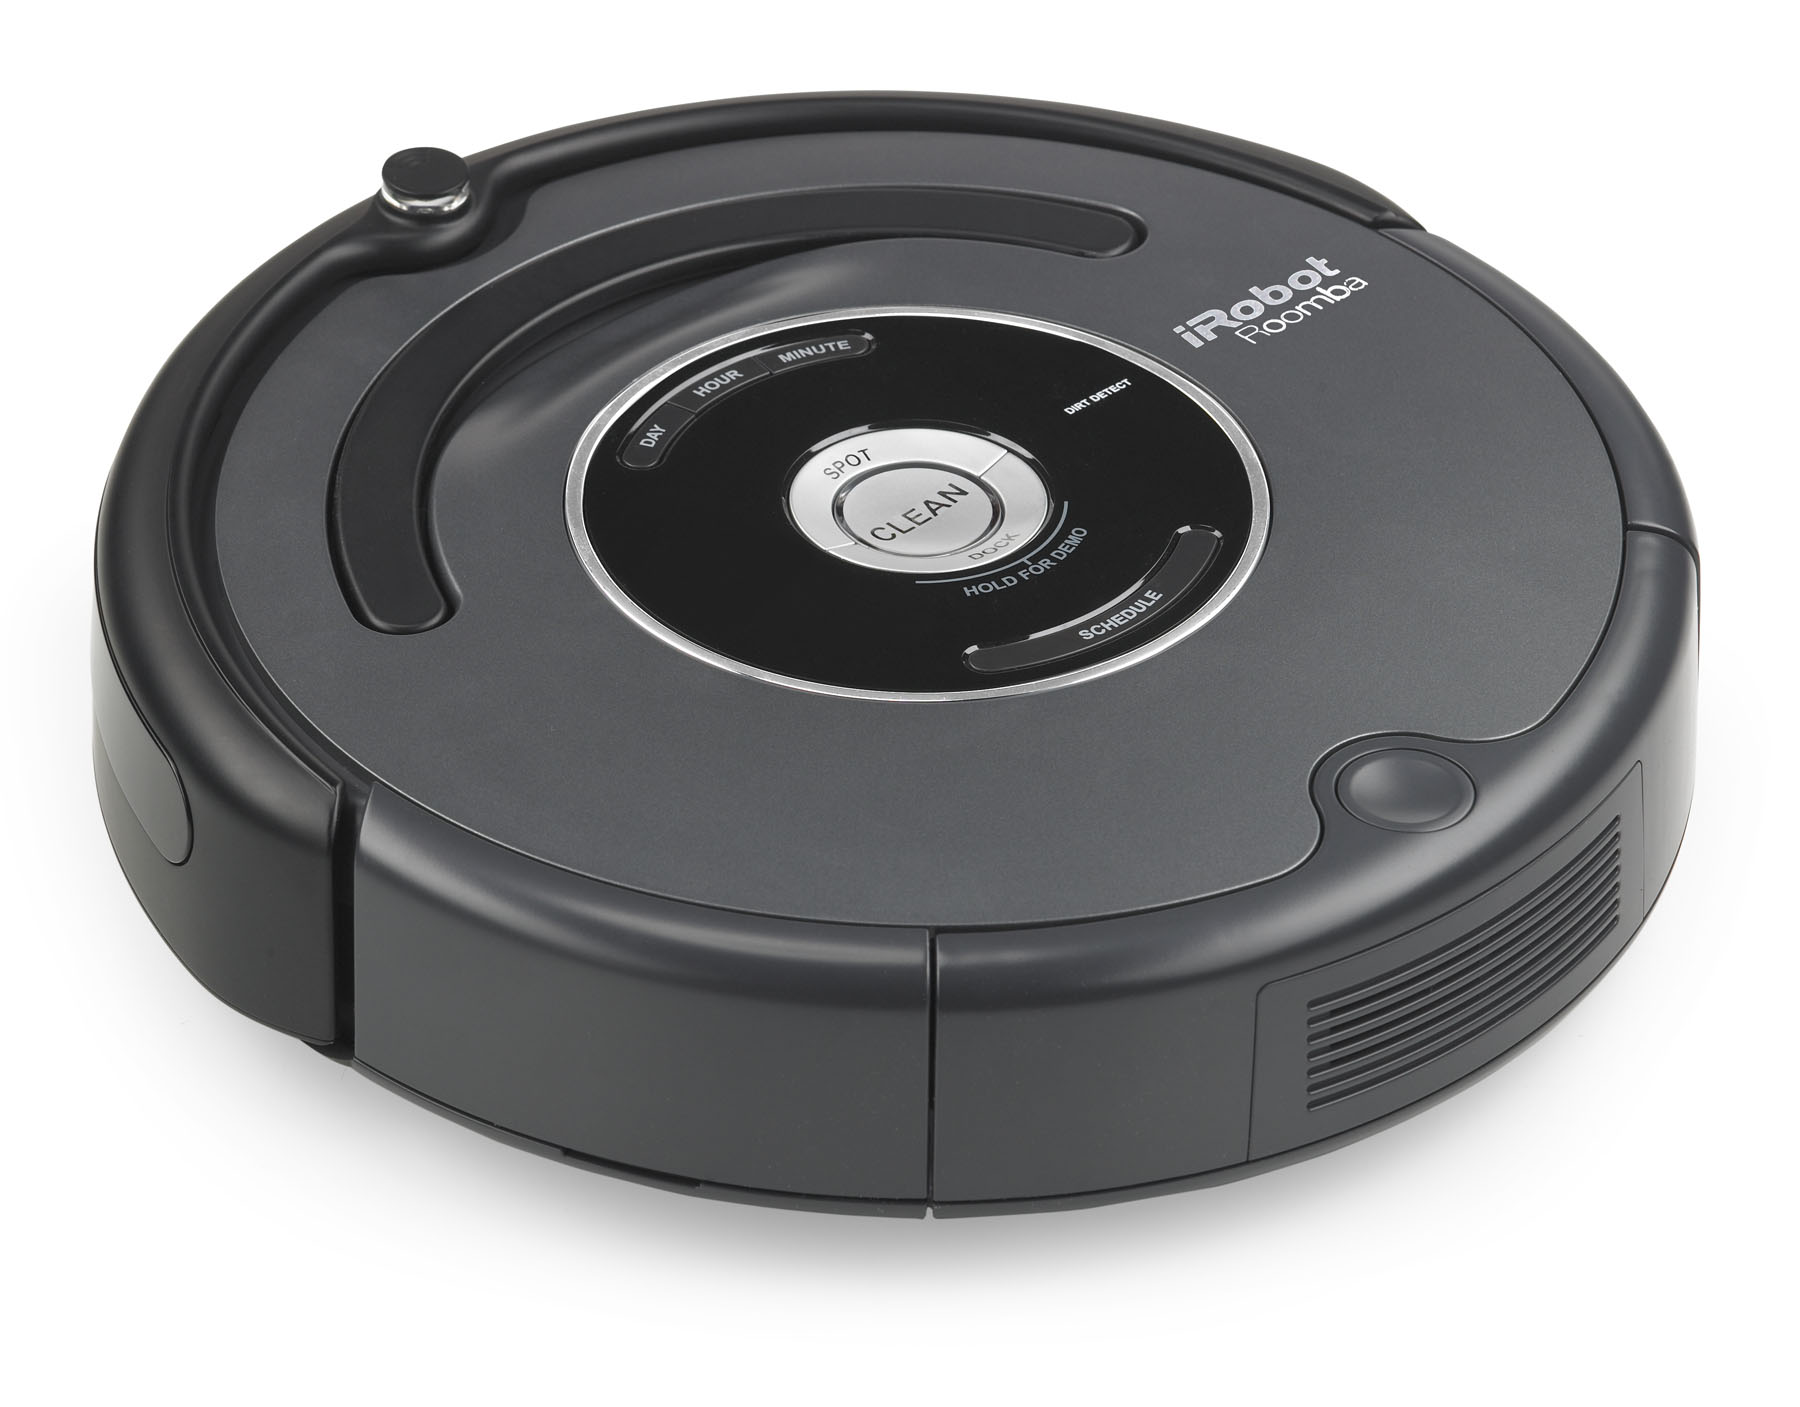 Roomba | Robot Wiki | FANDOM powered by Wikia